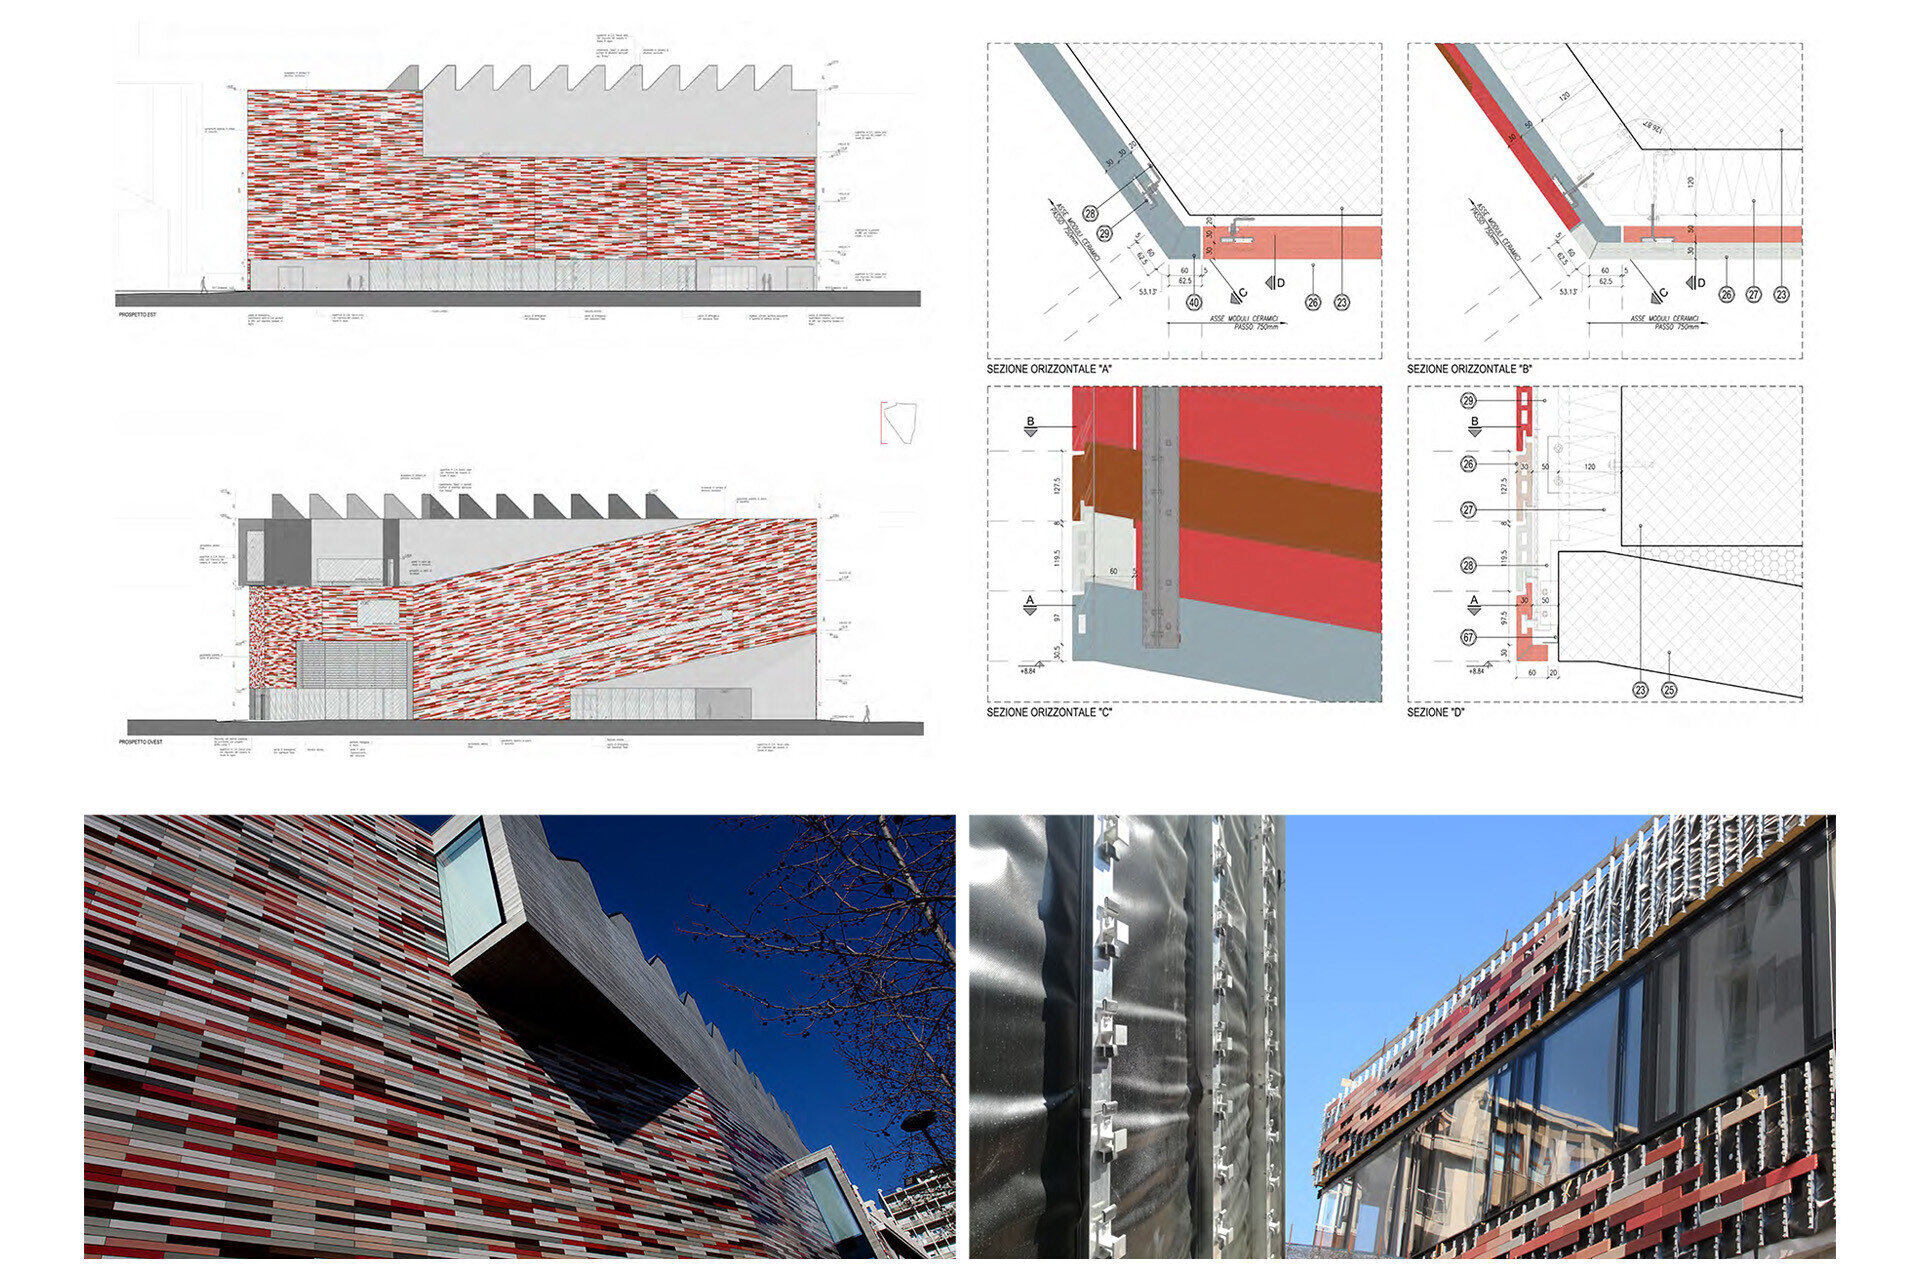 Facade design engineering by SCE Project M9 Dettagli